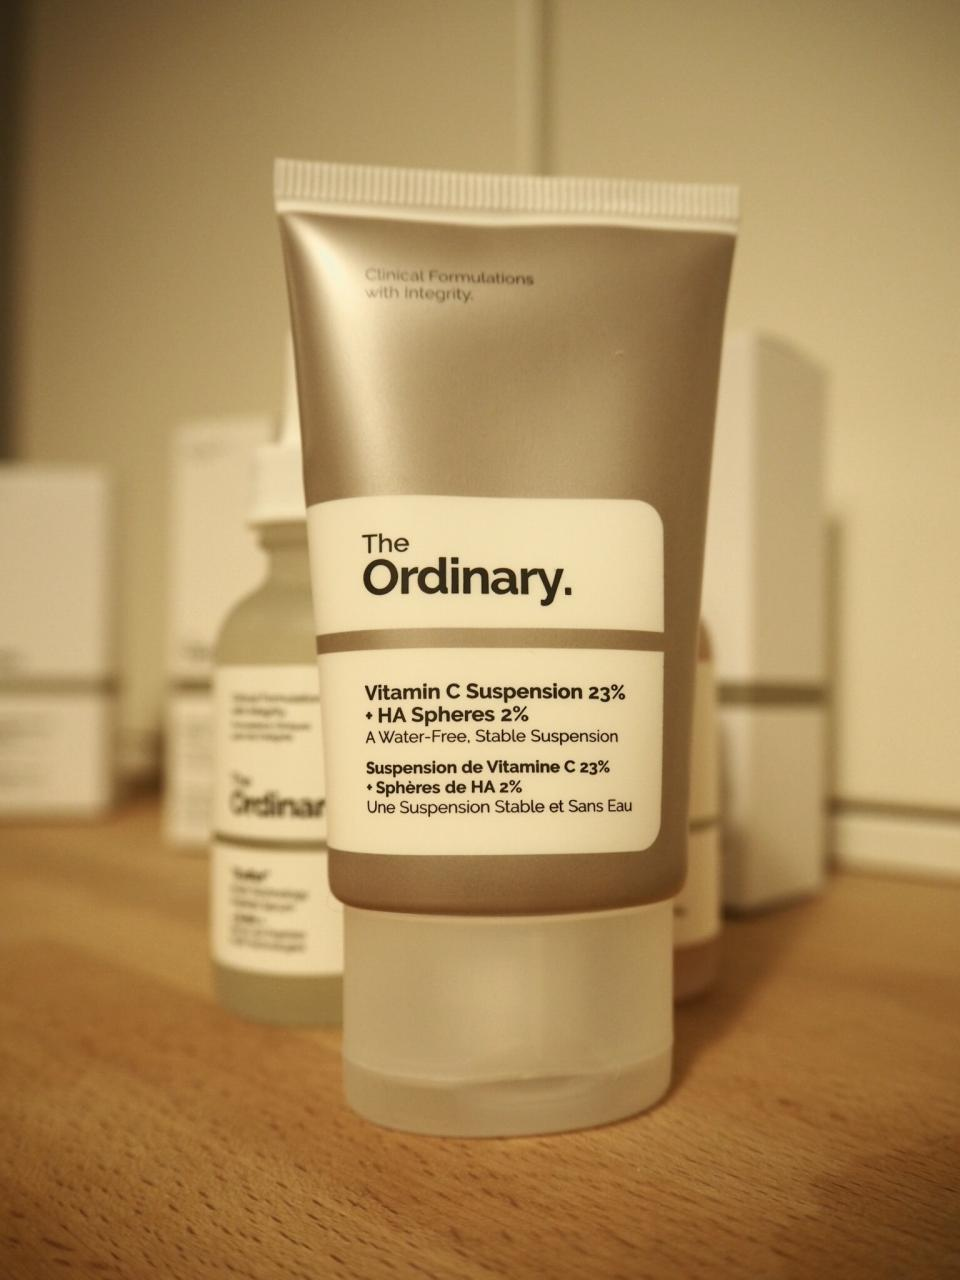 The Ordinary Skincare Acne and Aging Skin Regime packaging- flat plastic tube